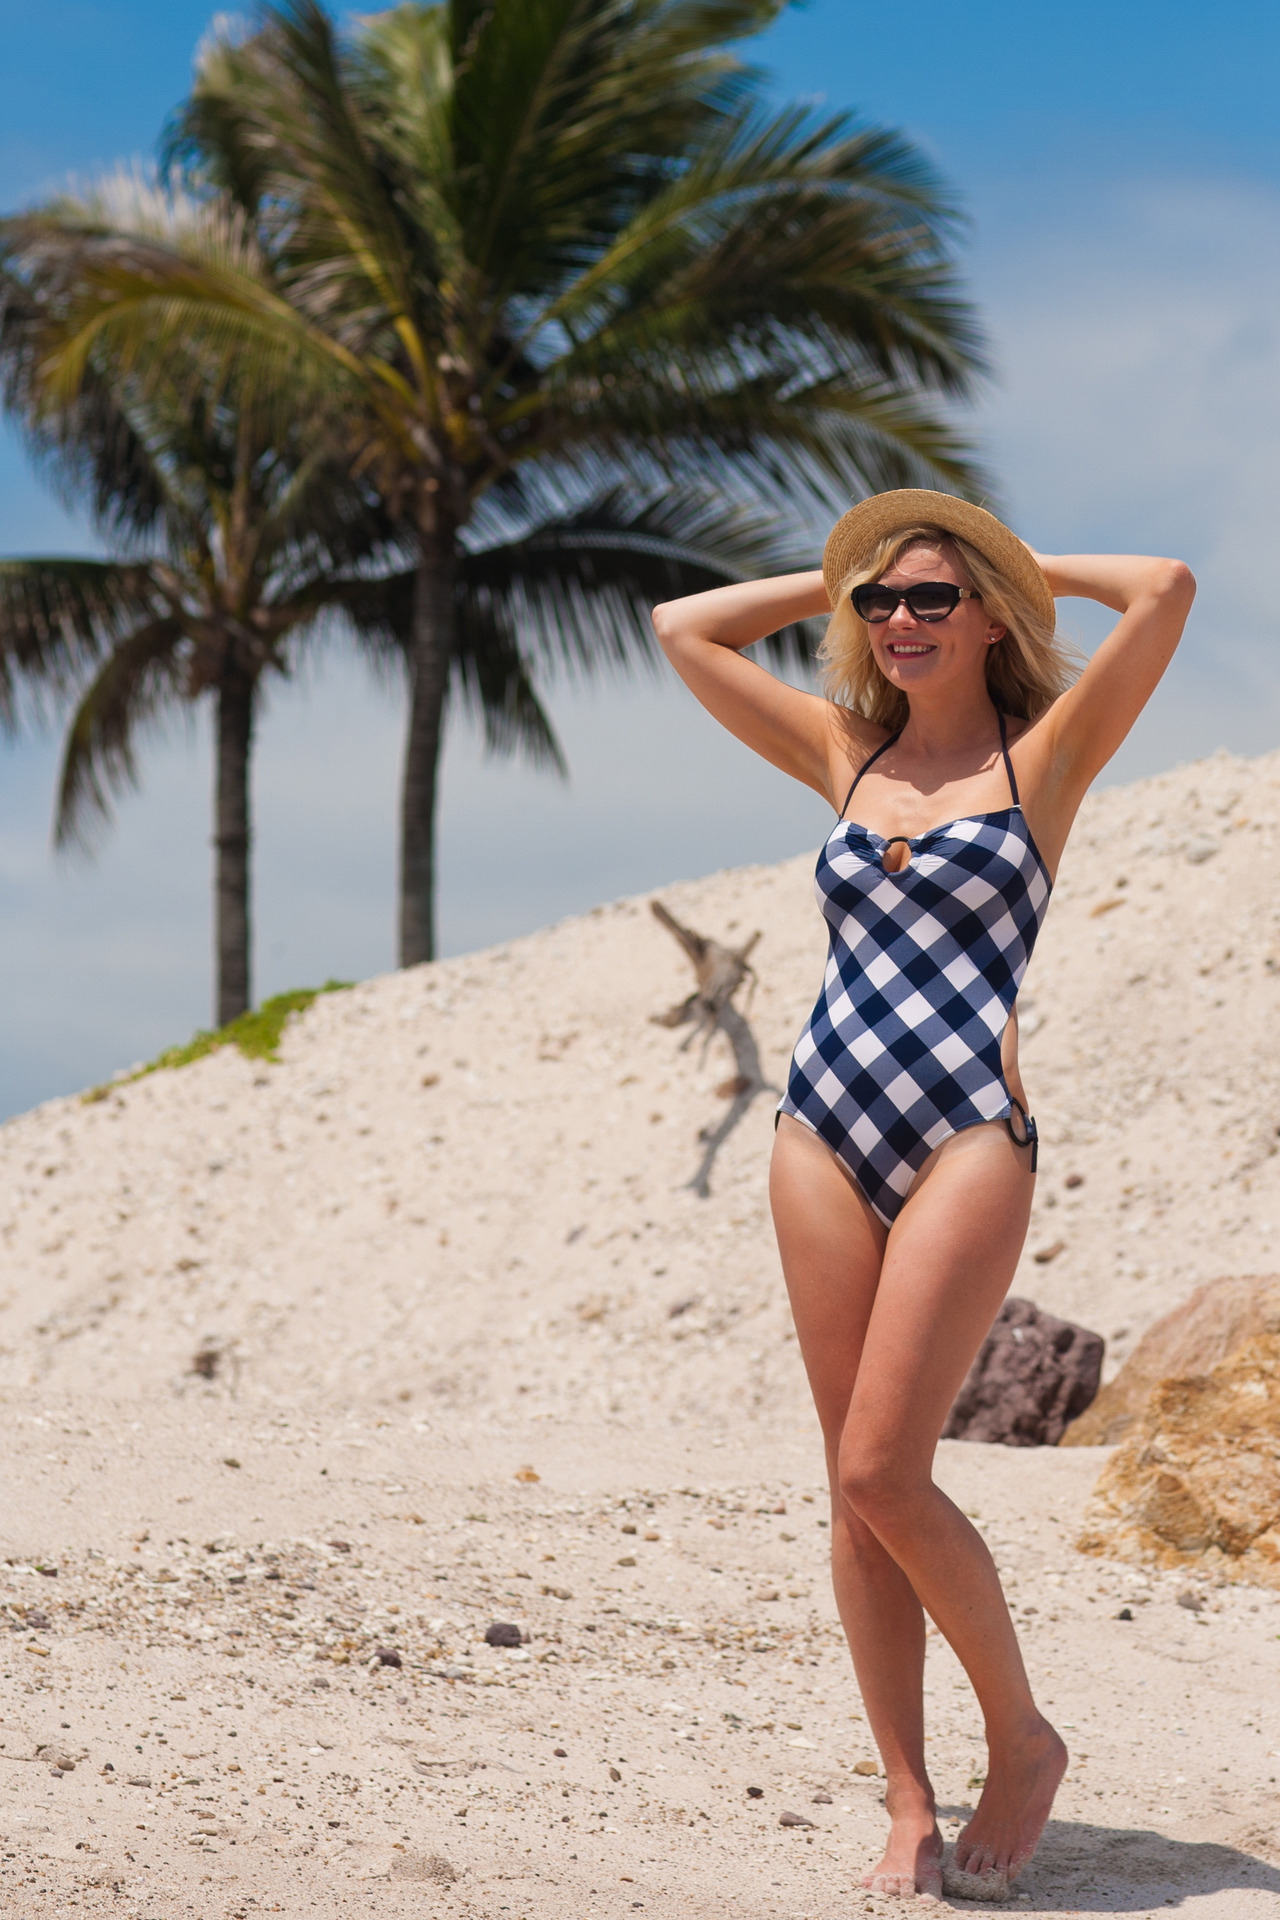 suicideblonde:  Finally found an ID on this swimsuit that Kirsten Dunst is wearing here - it's from Eres Sping/Summer 2012 collection.